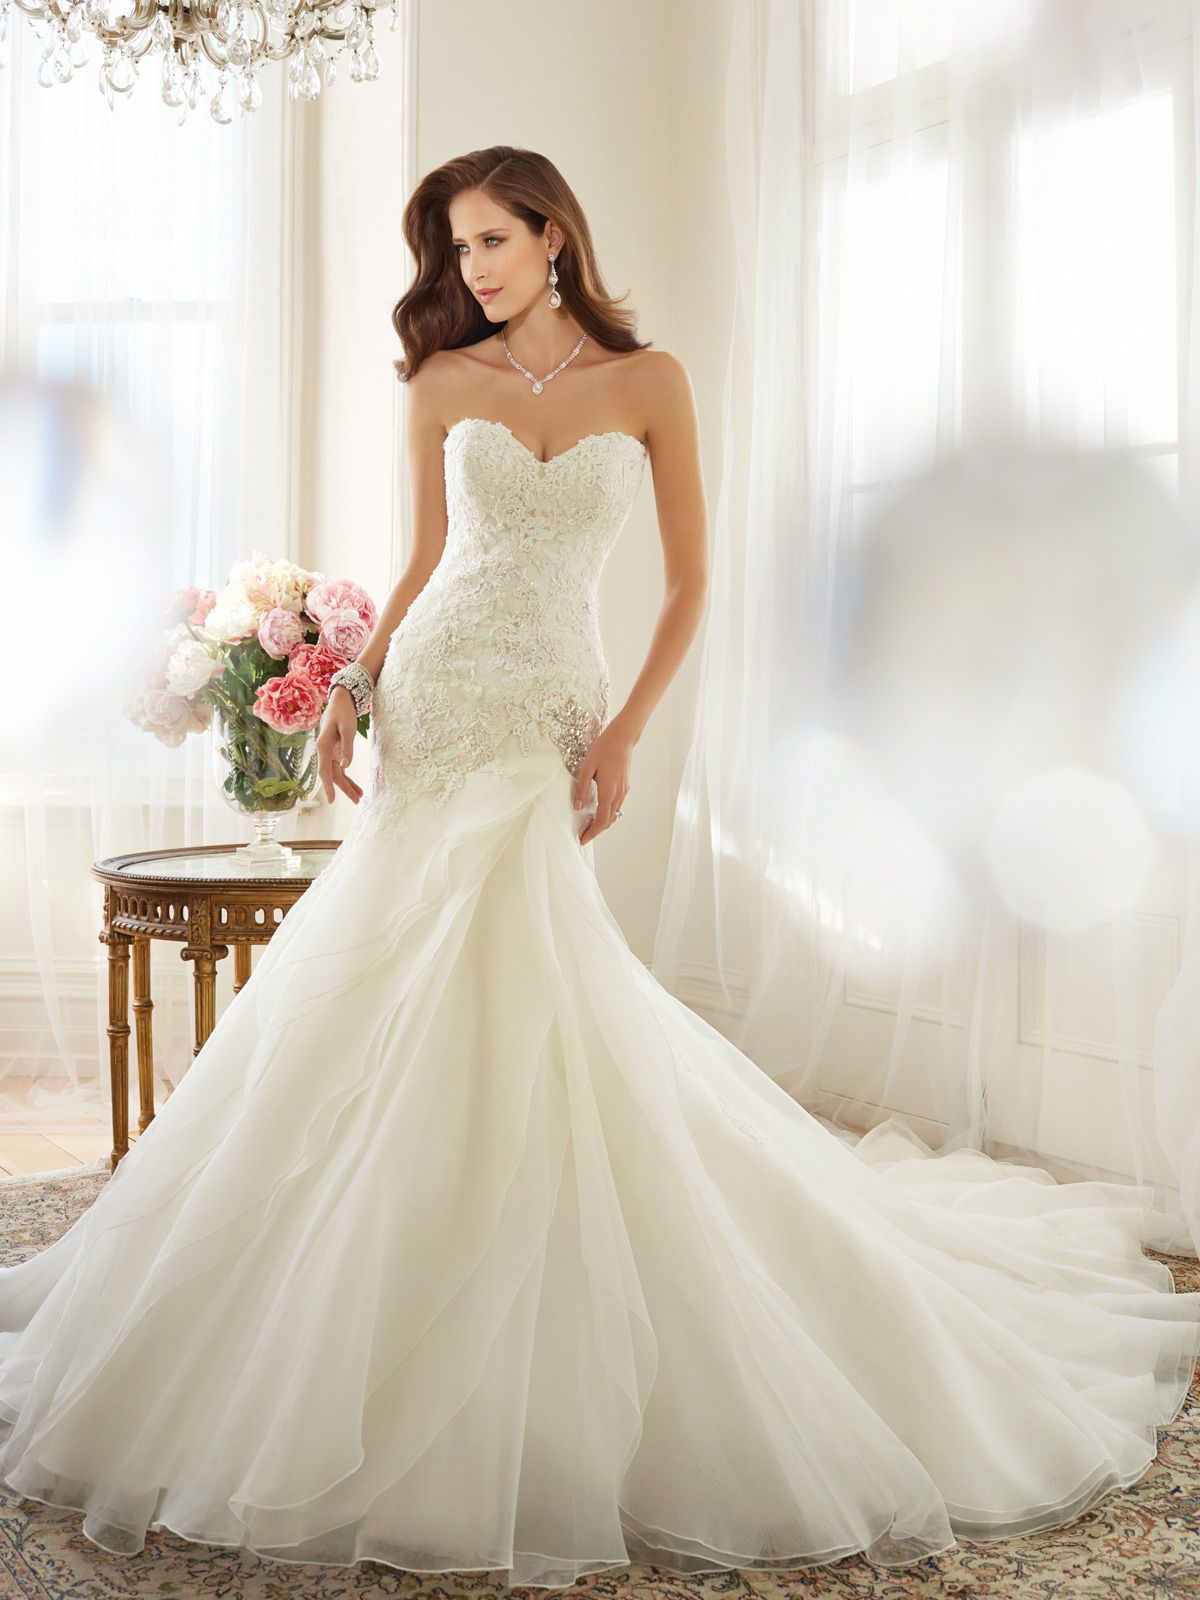 Sophia Tolli Wedding Dresses 2018 for Mon Cheri | Beaded lace ...